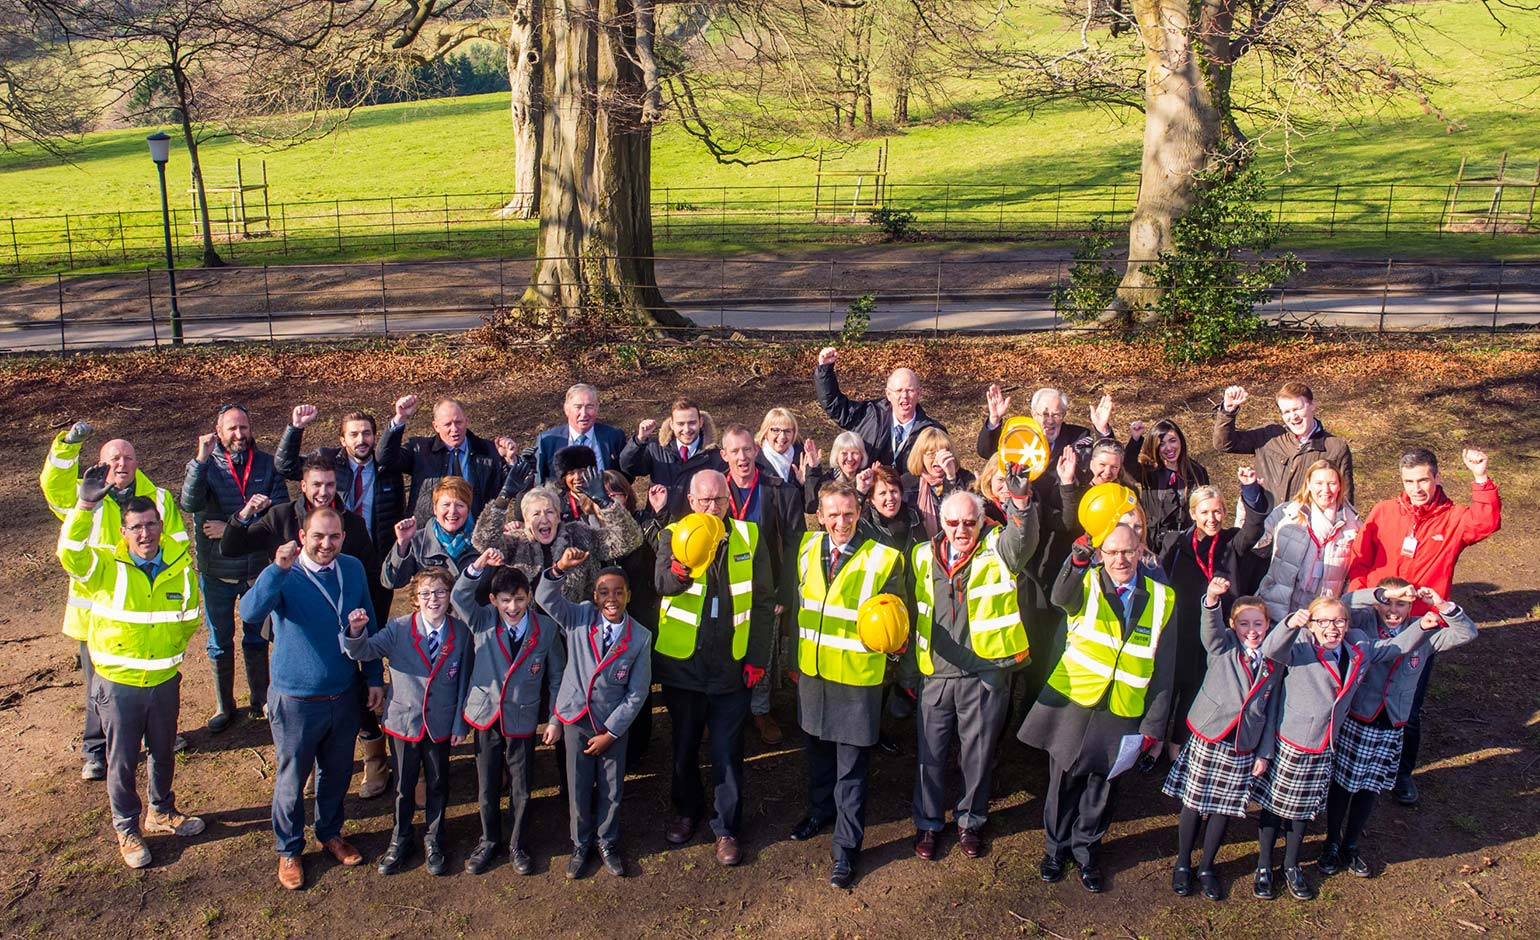 Midas Construction celebrates topping out at Kingswood Prep School